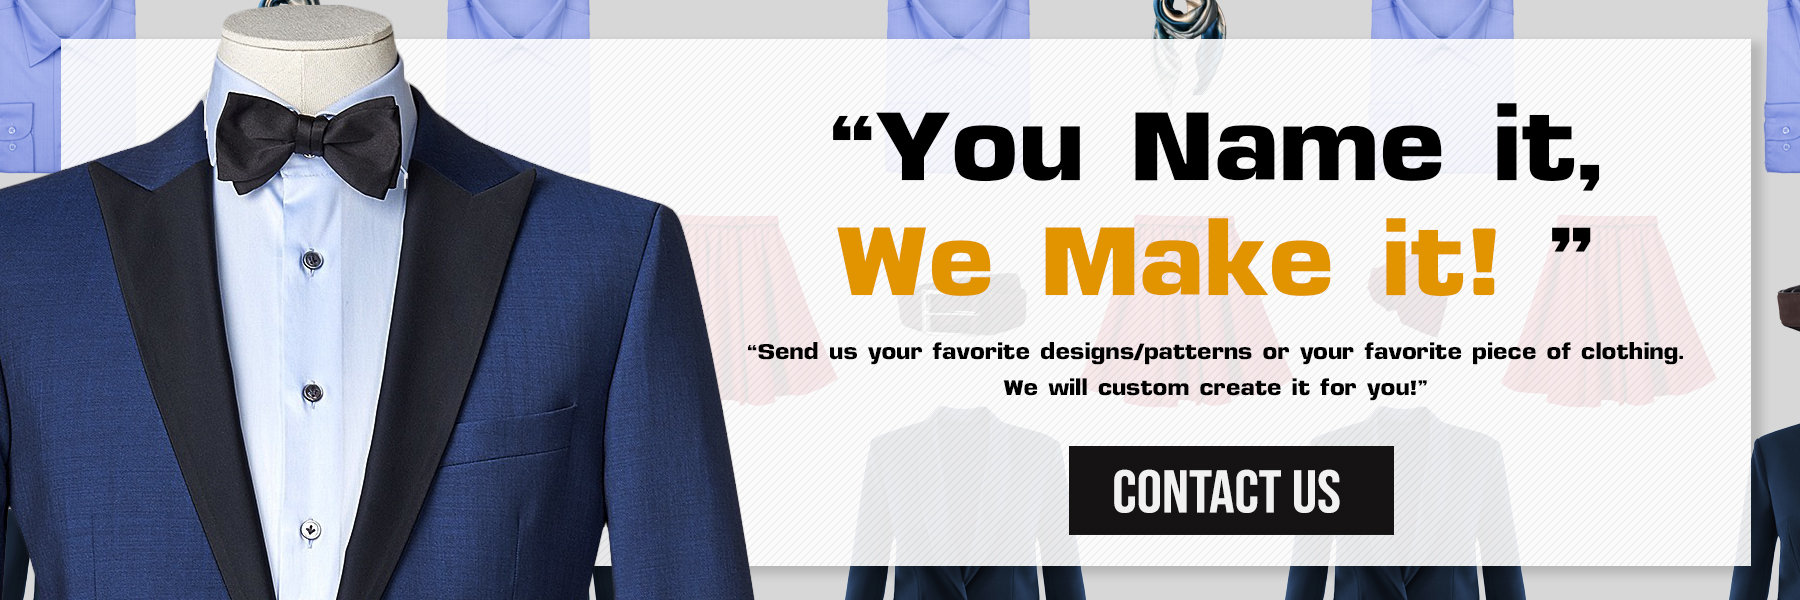 You name it, we make it, custom clothing for men and women in styles, colors, fabrics and sizes of your choice.